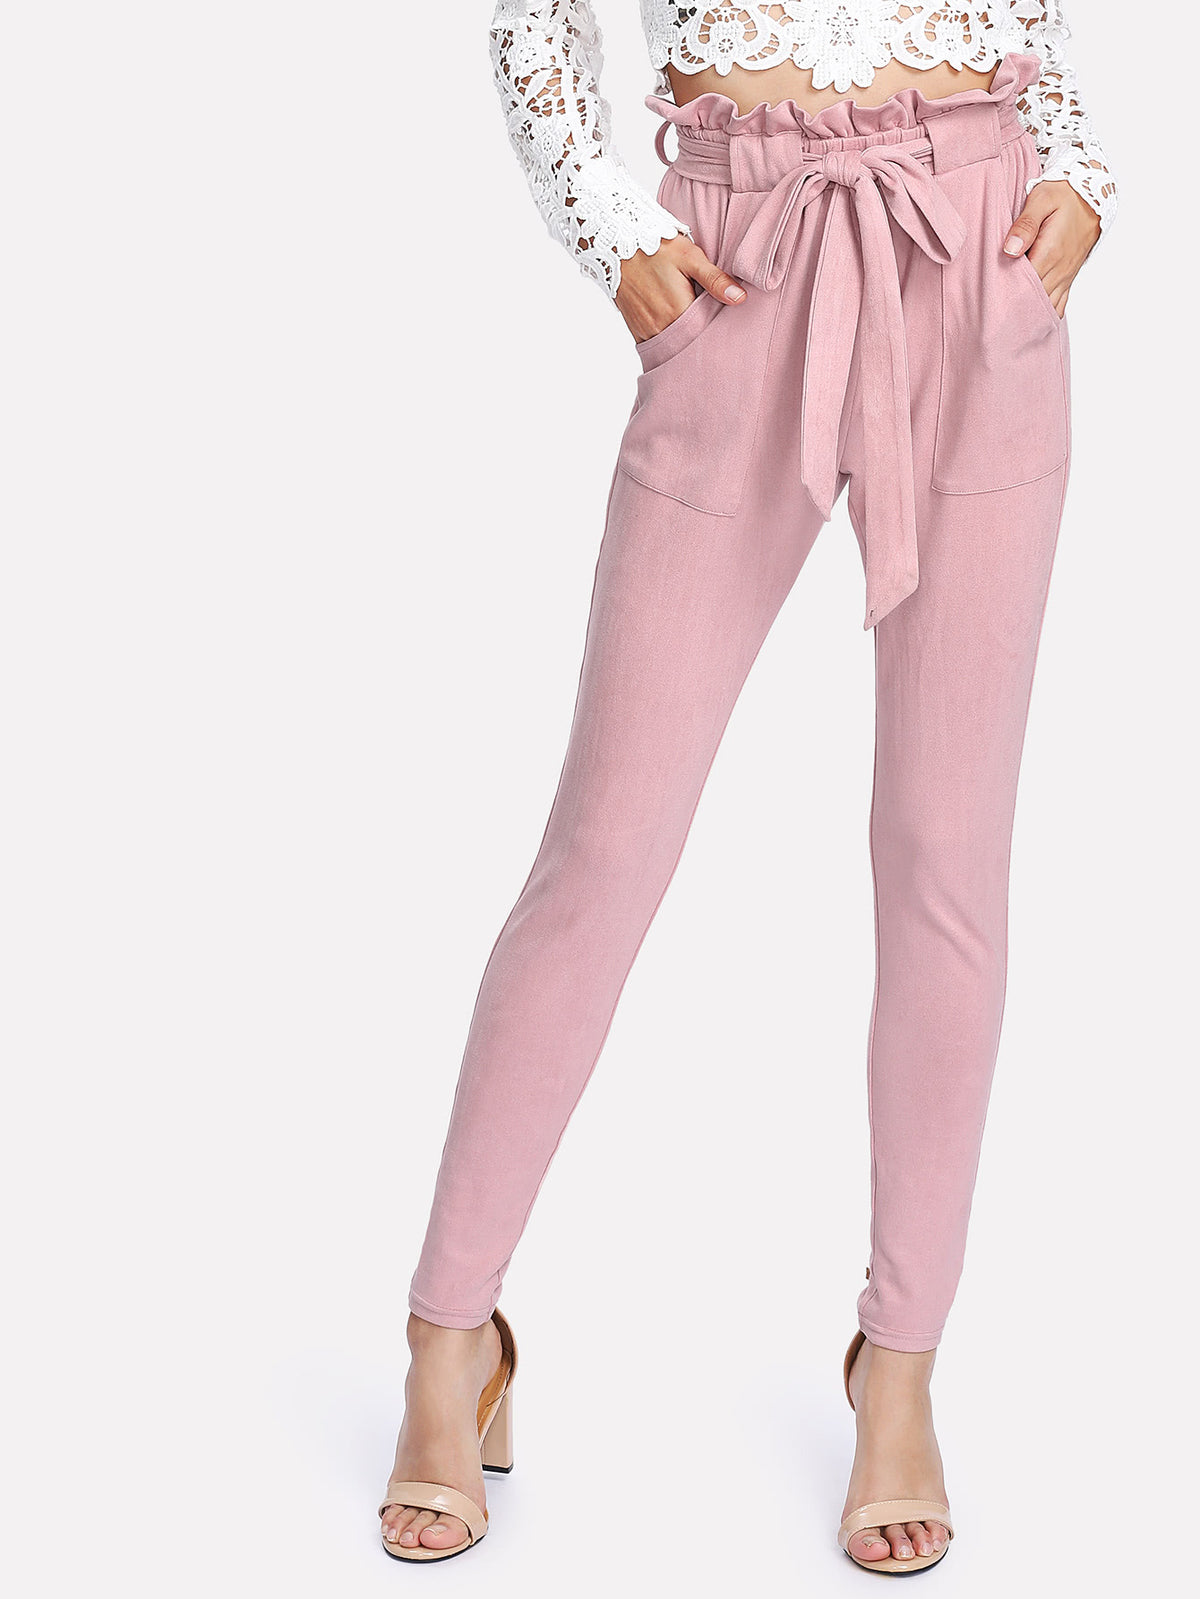 Self Belted Frilled Waist Suede Pants